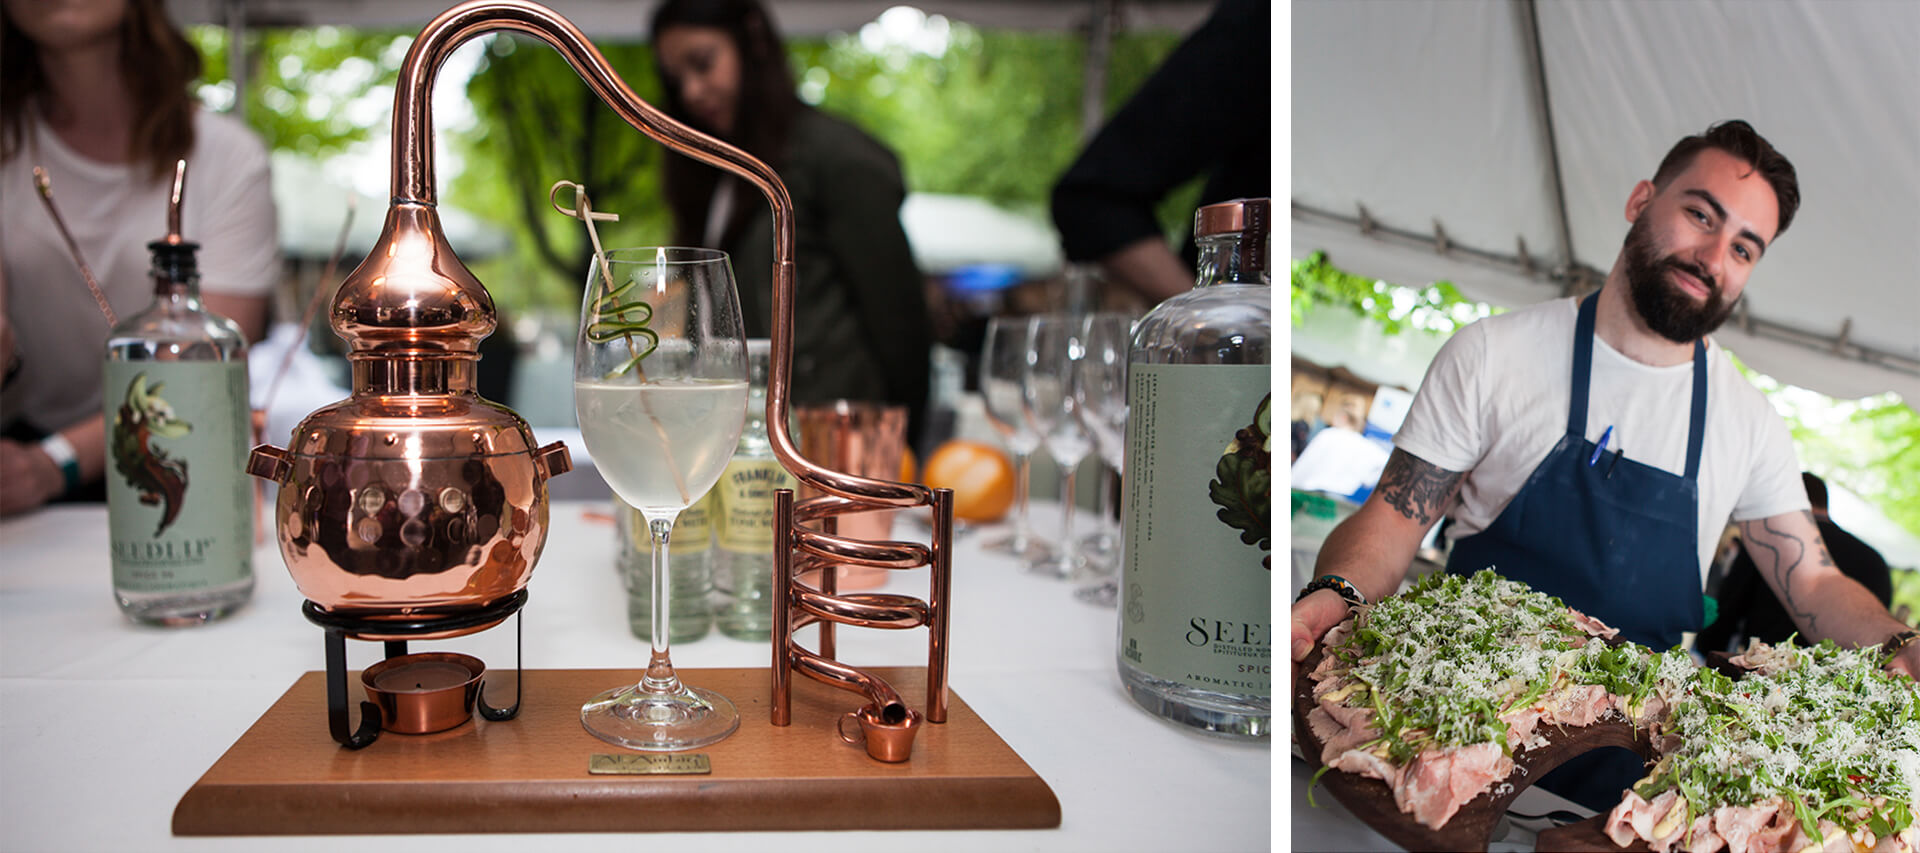 Left: A glass of cocktail on a copper brewing machine, with three people standing surround the table in the background.  Right: A chef serving two board of hams topped with salad and cheese.